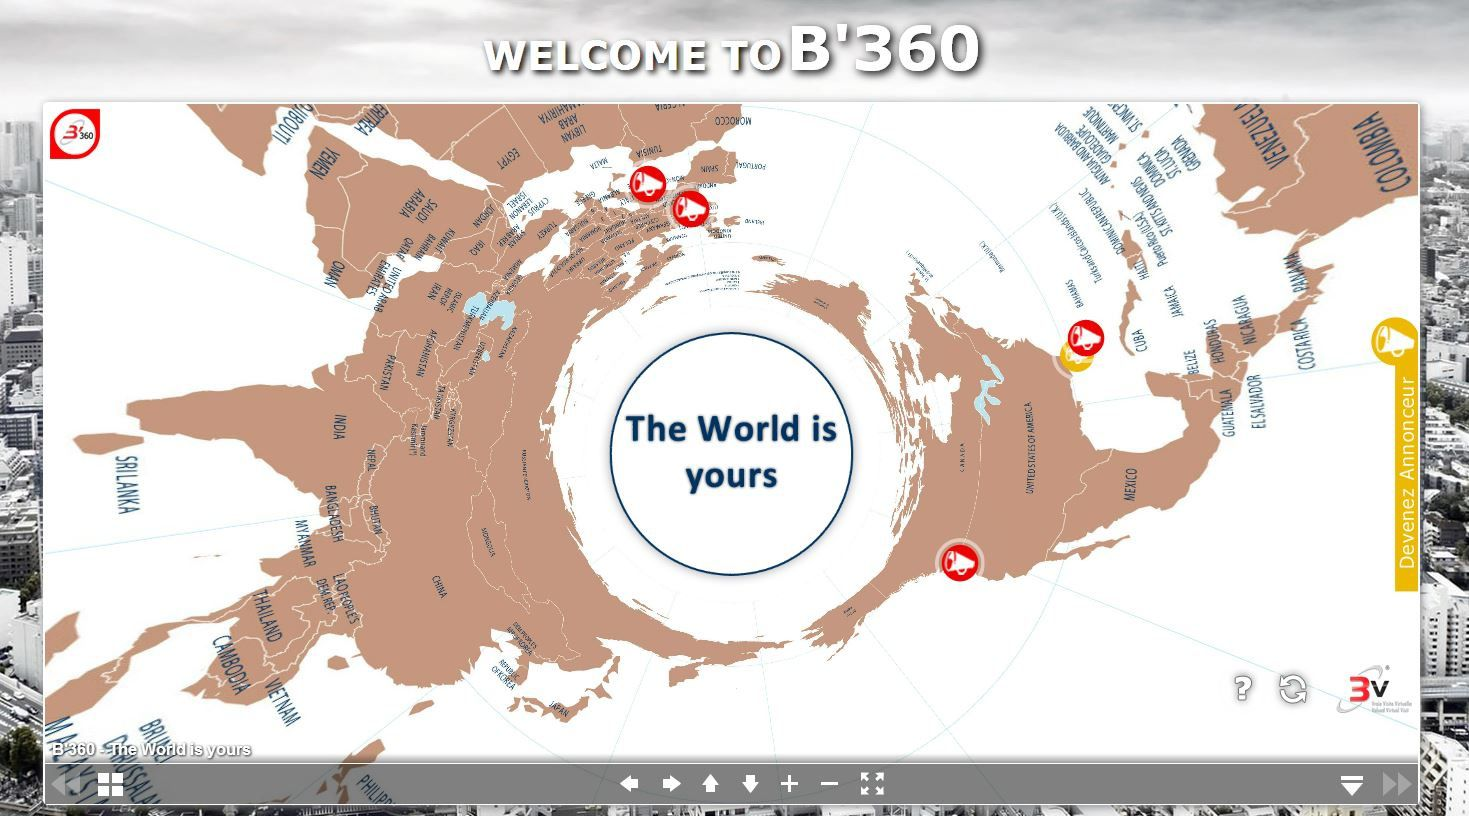 B'360 - Be 360 - The WORLD is YOURS - Dare to be better ? OK !  Ookawa-Corp blown by B'Digital, powered by B'Leader, spread by B'Sociable, amplified by B'Press, energized by New3S, hosted by3DWC.biz - B'360 - The WORLD is YOURS